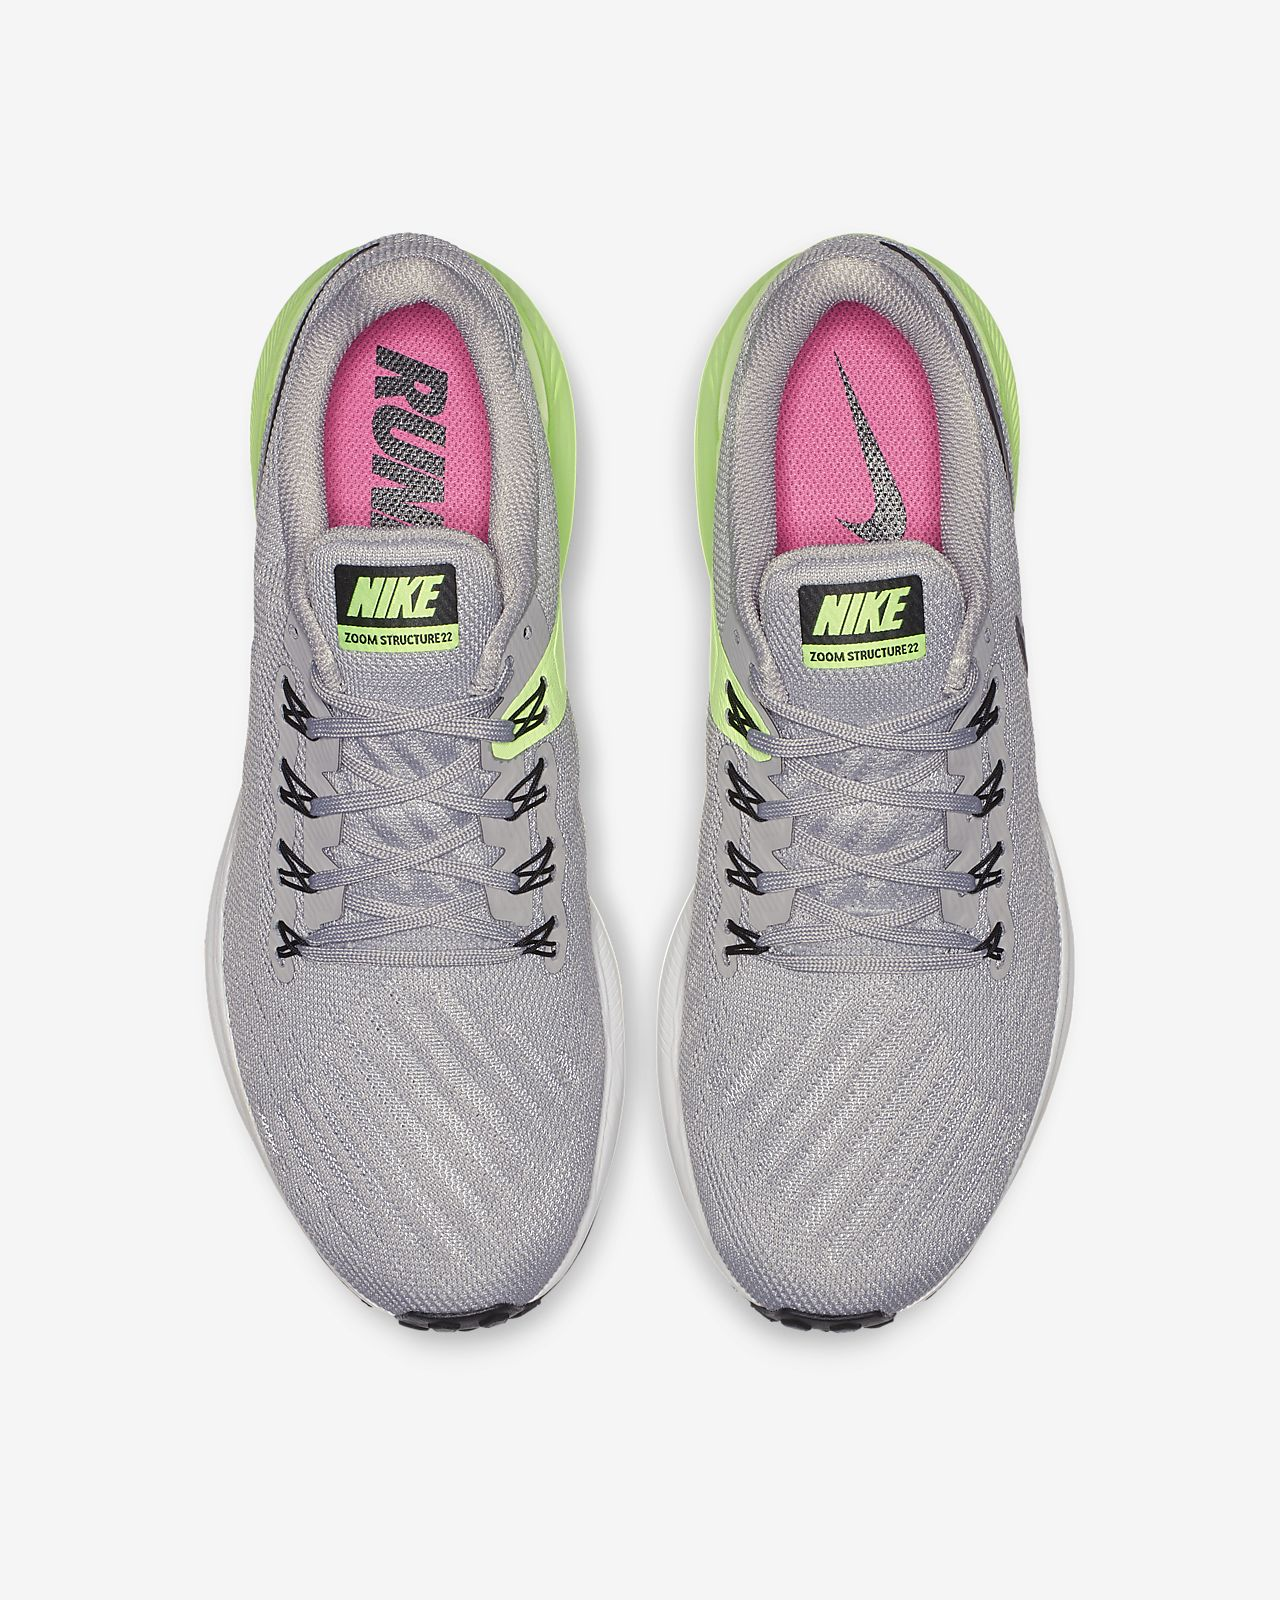 a851035225a9 Nike Air Zoom Structure 22 Men s Running Shoe. Nike.com GB